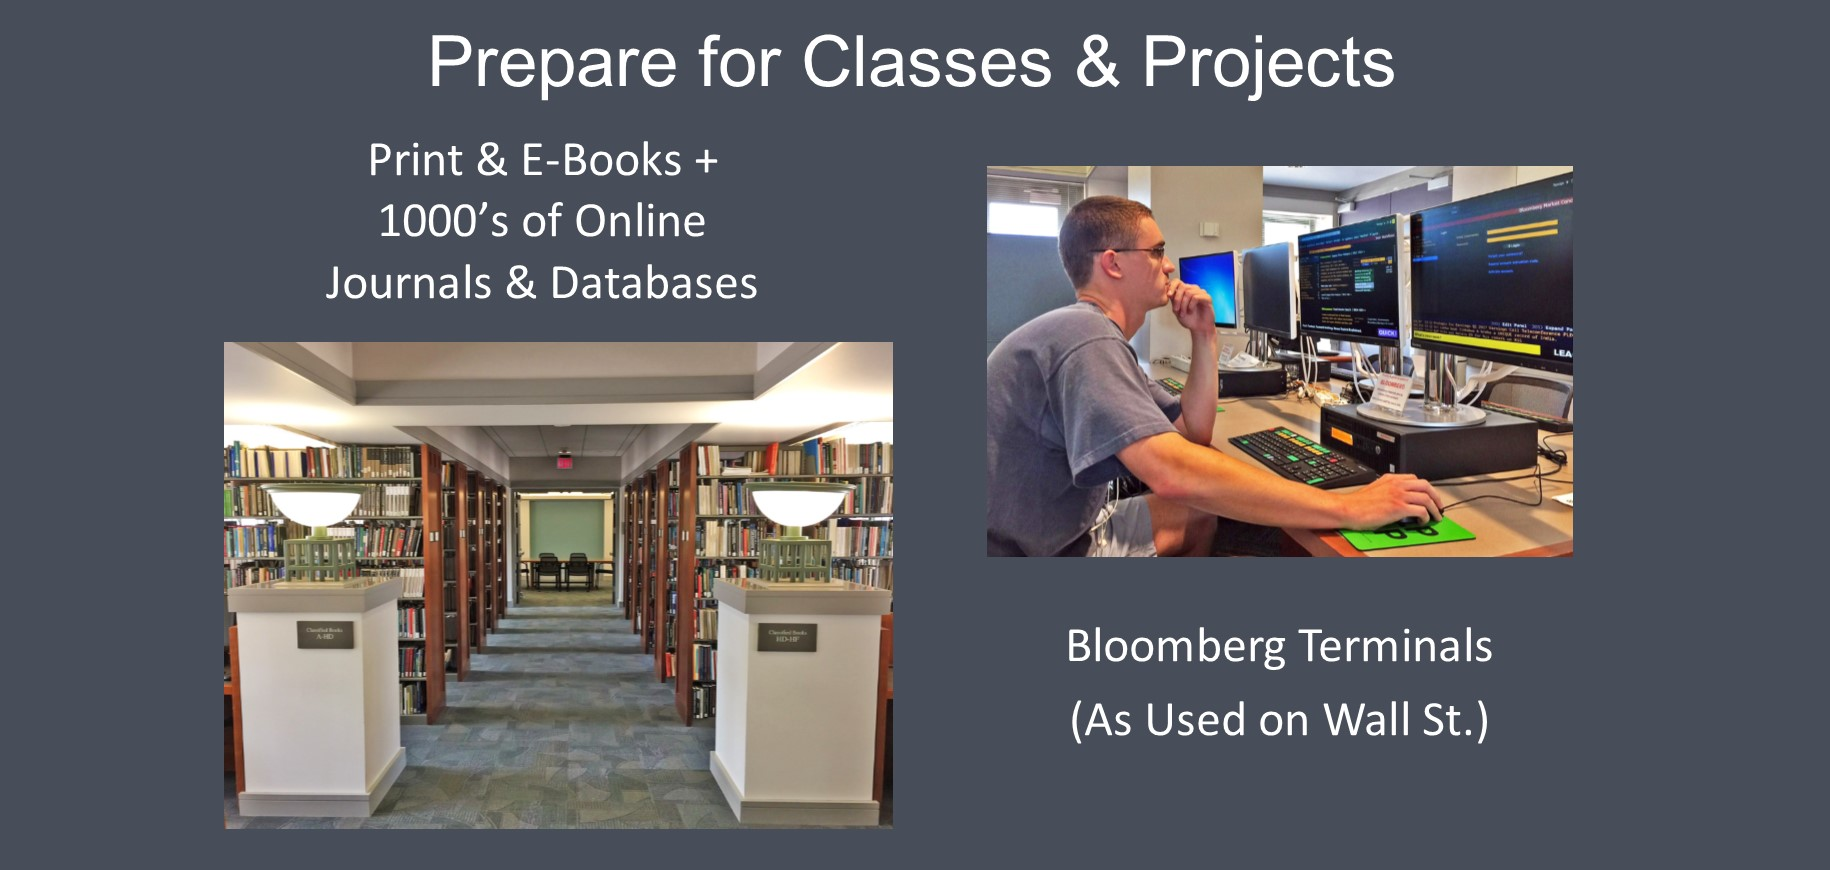 The library has thousands of books and online journals, as well as Bloomberg computers, as used on Wall Street